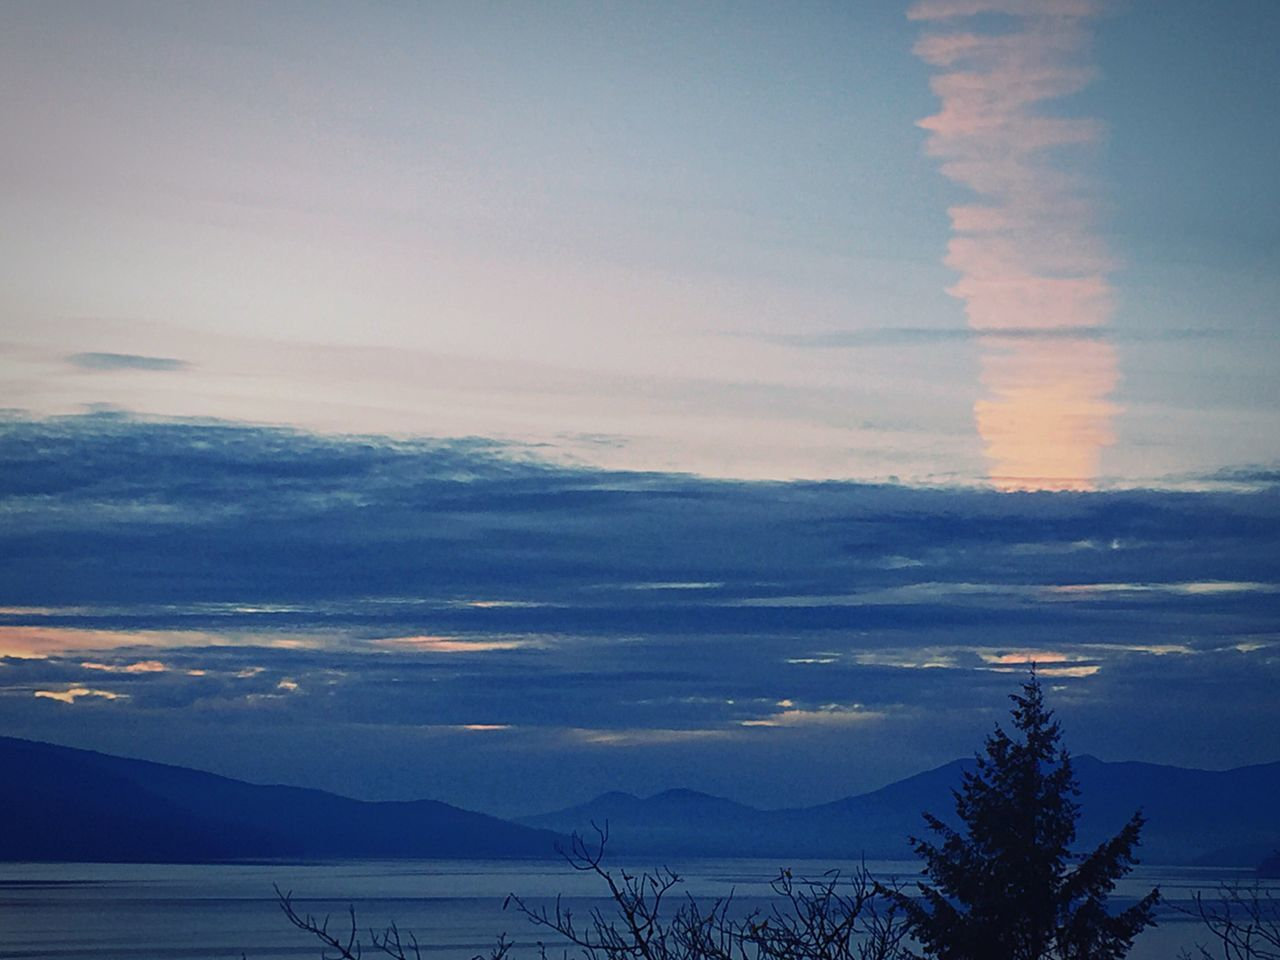 scenics, sky, nature, tranquil scene, beauty in nature, tranquility, sunset, mountain, cloud - sky, no people, silhouette, outdoors, idyllic, landscape, tree, mountain range, winter, sea, water, cold temperature, day